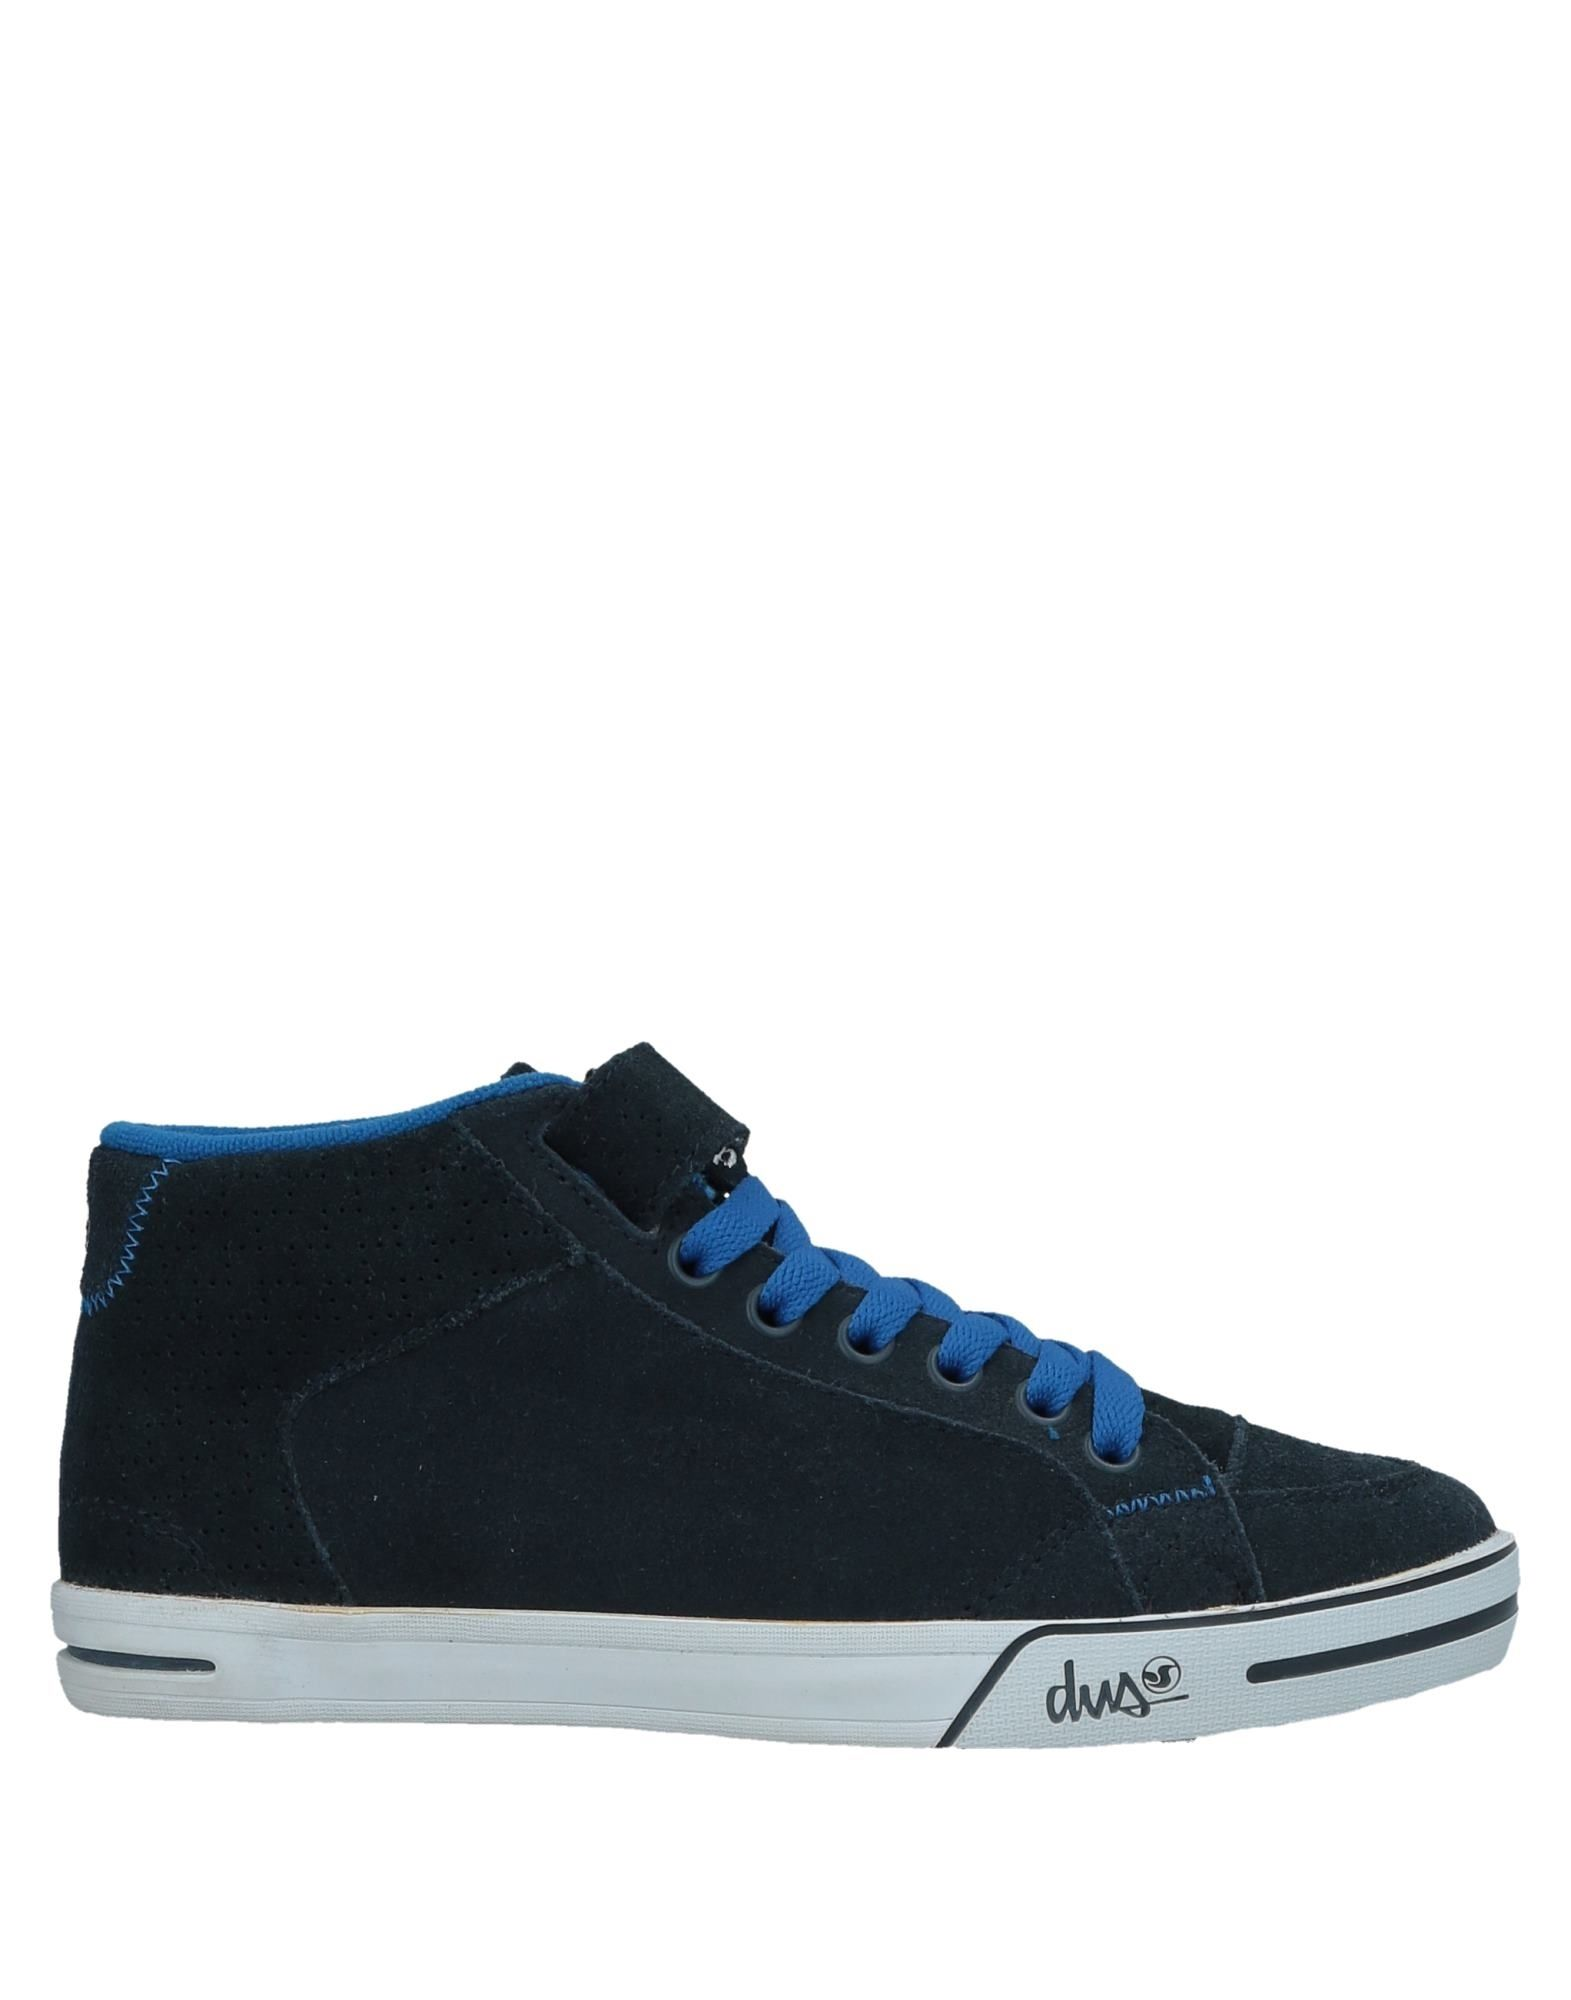 Sneakers Dvs Shoe Company Donna - 11532537TP